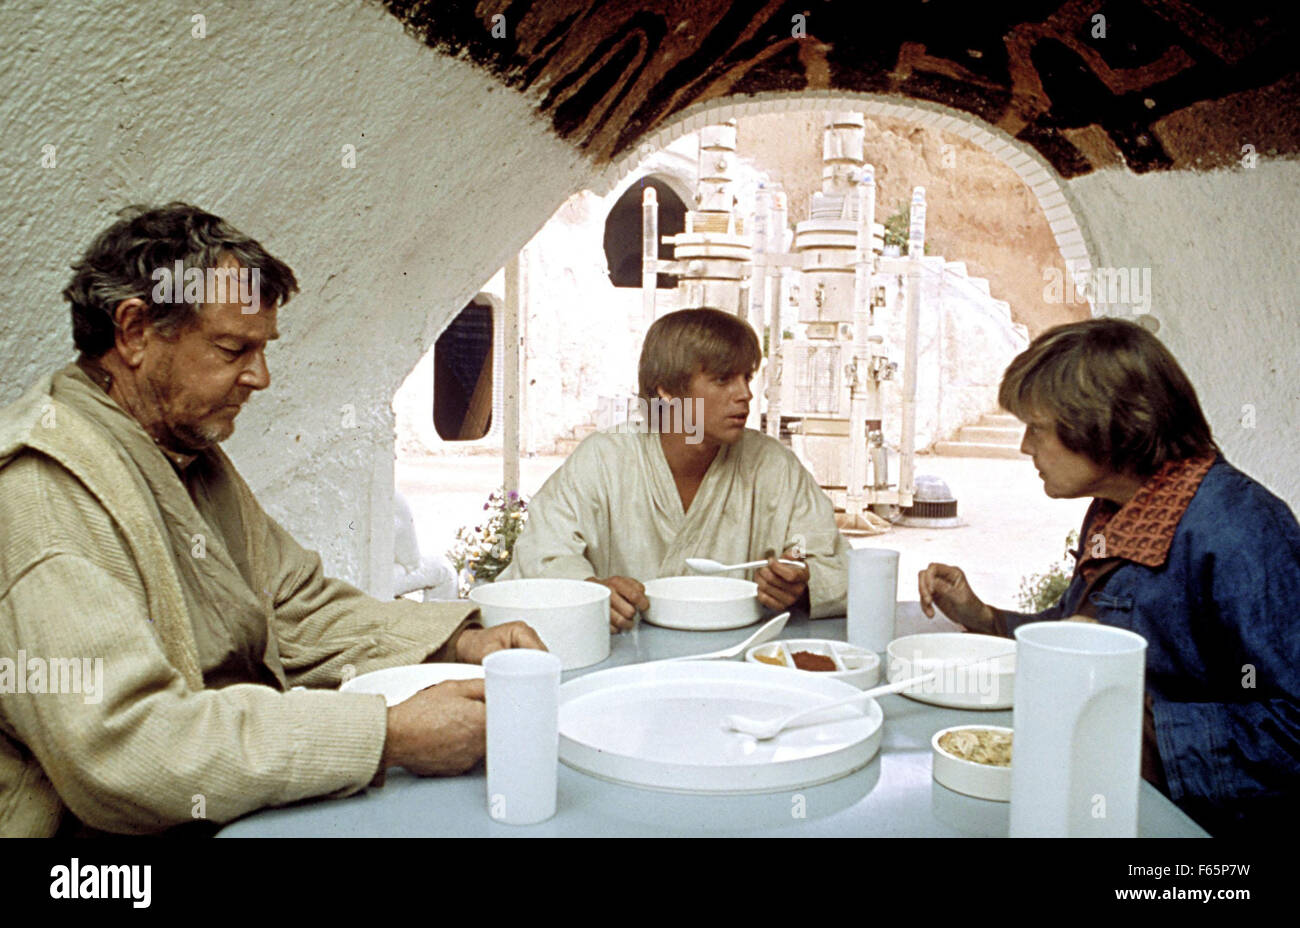 Star Wars: Episode IV - A New Hope Year : 1977 USA Director : George Lucas Phil Brown, Mark Hamill, Shelagh Fraser - Stock Image